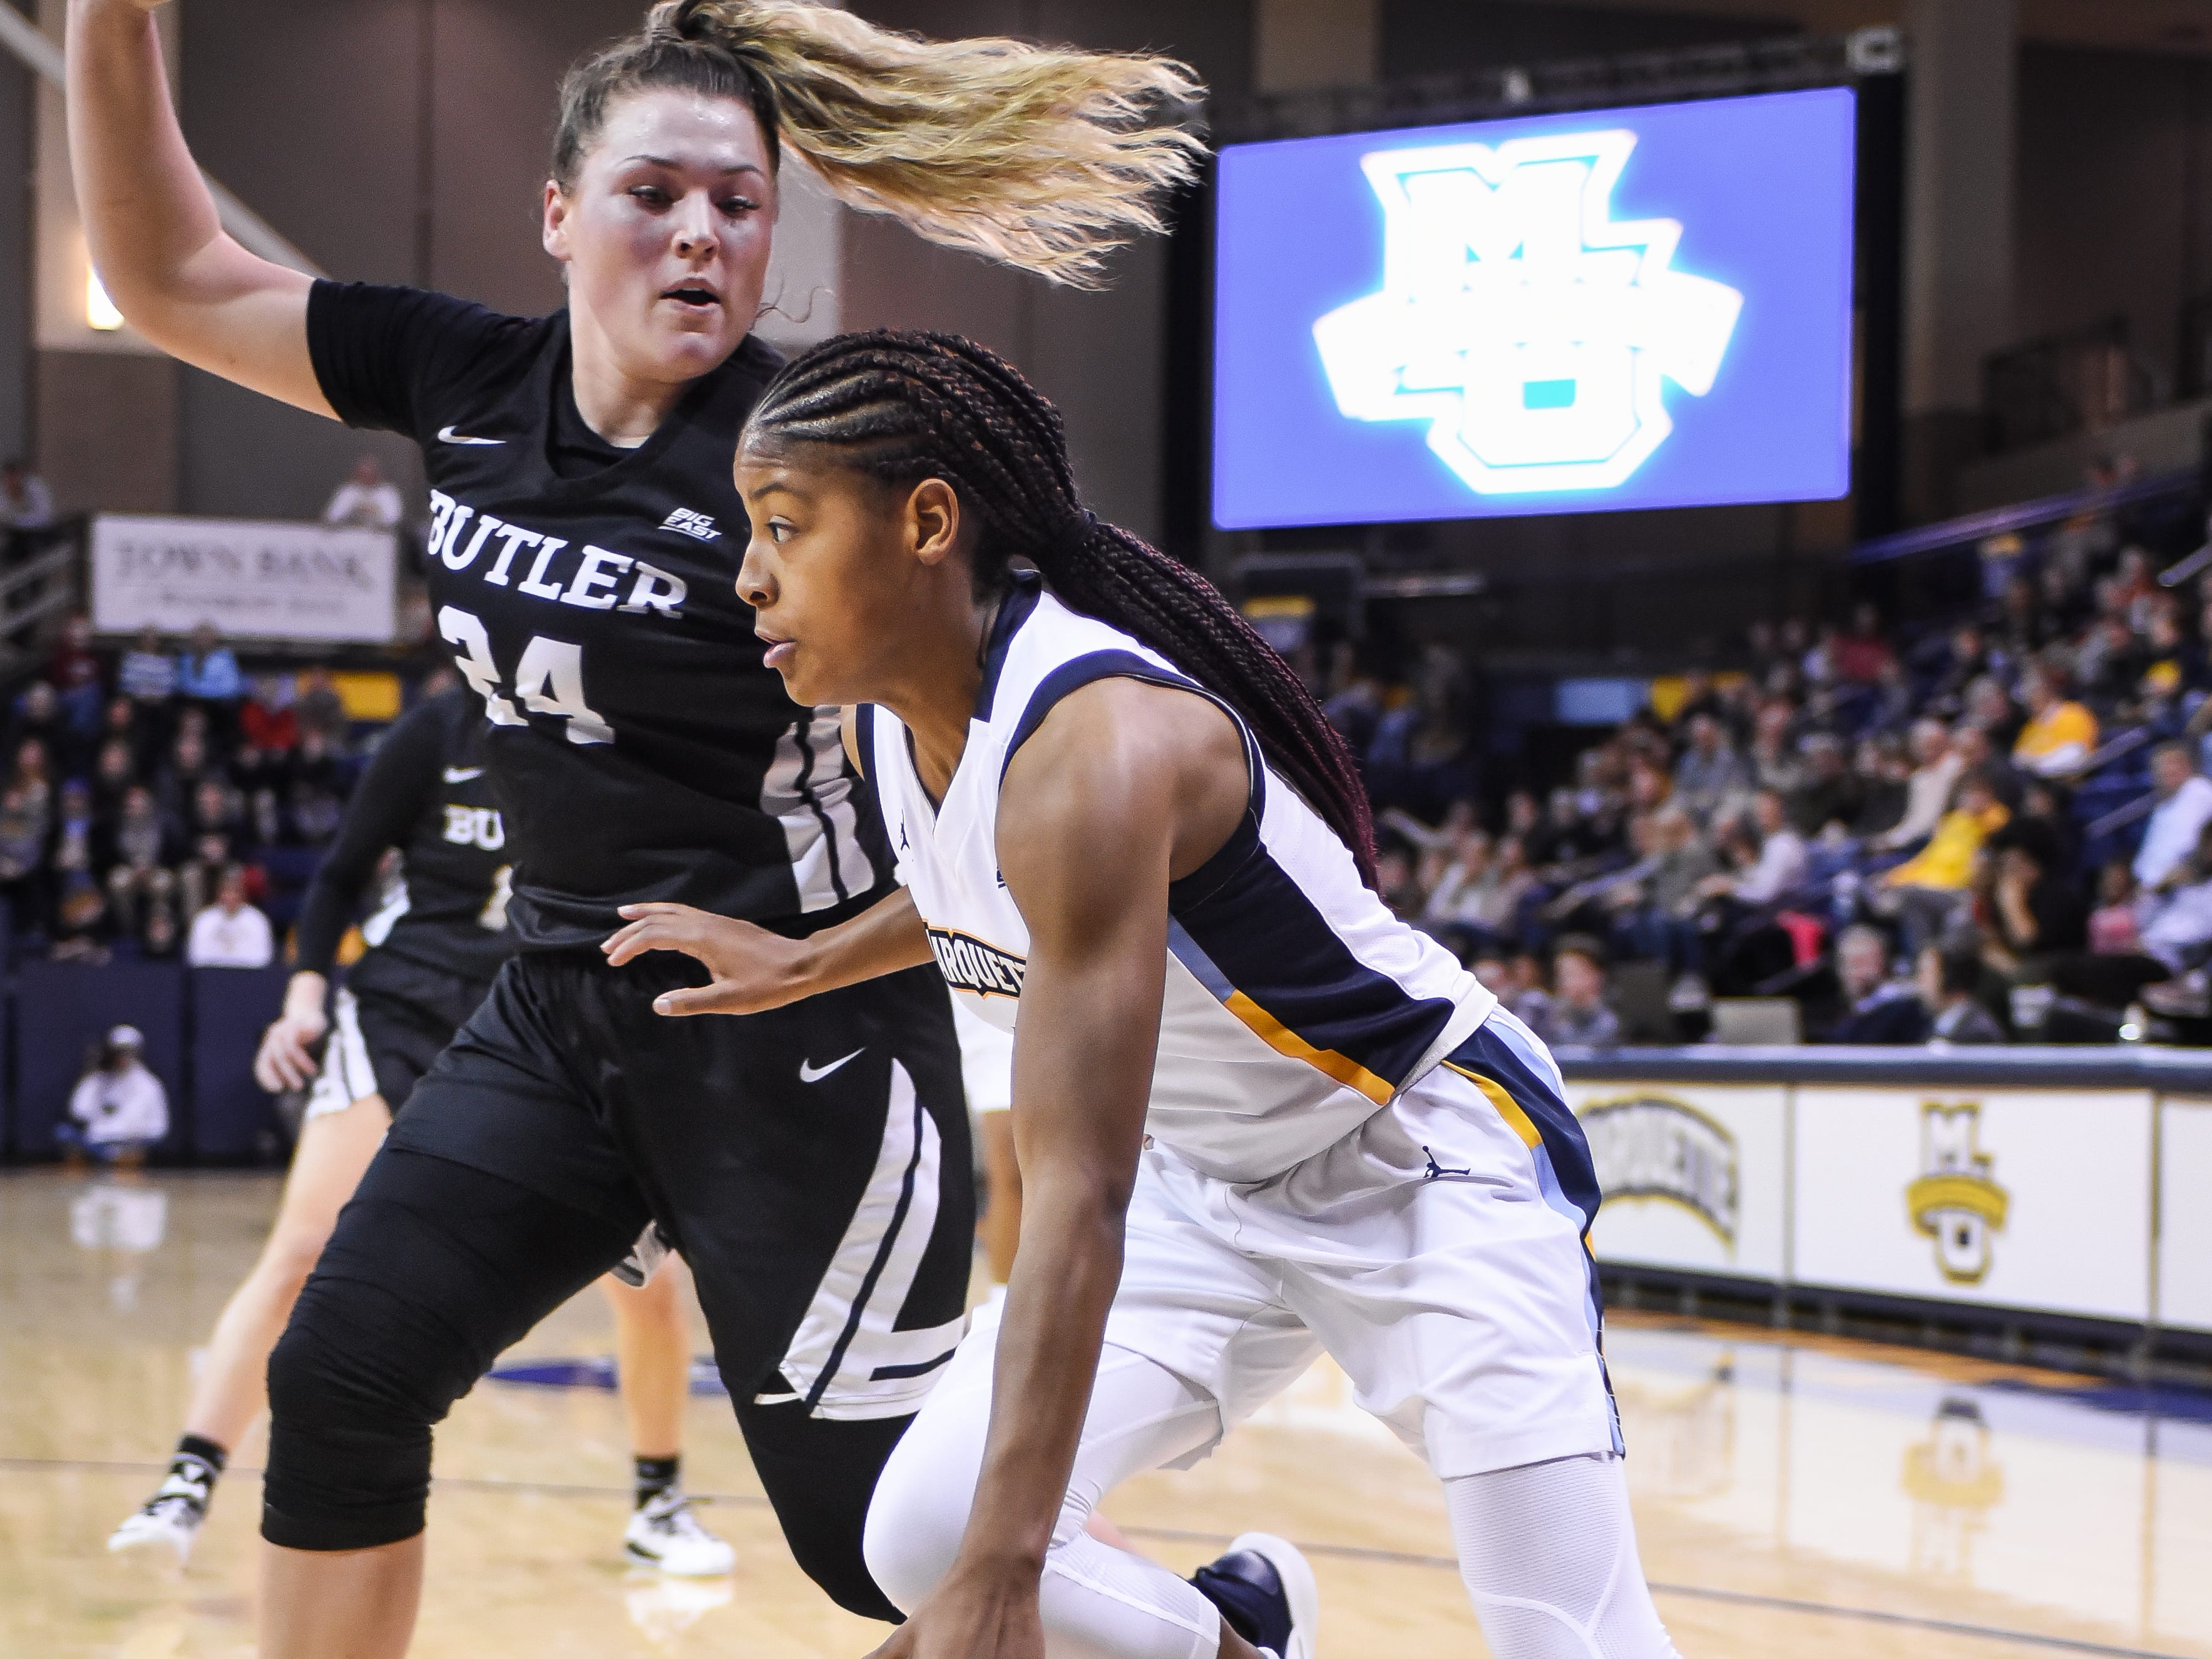 Marquette guard Danielle King drives the baseline past Butler forward/center Tori Schickel in a Big East women's college basketball game Friday, February 22, 2019, at the Al McGuire Center.